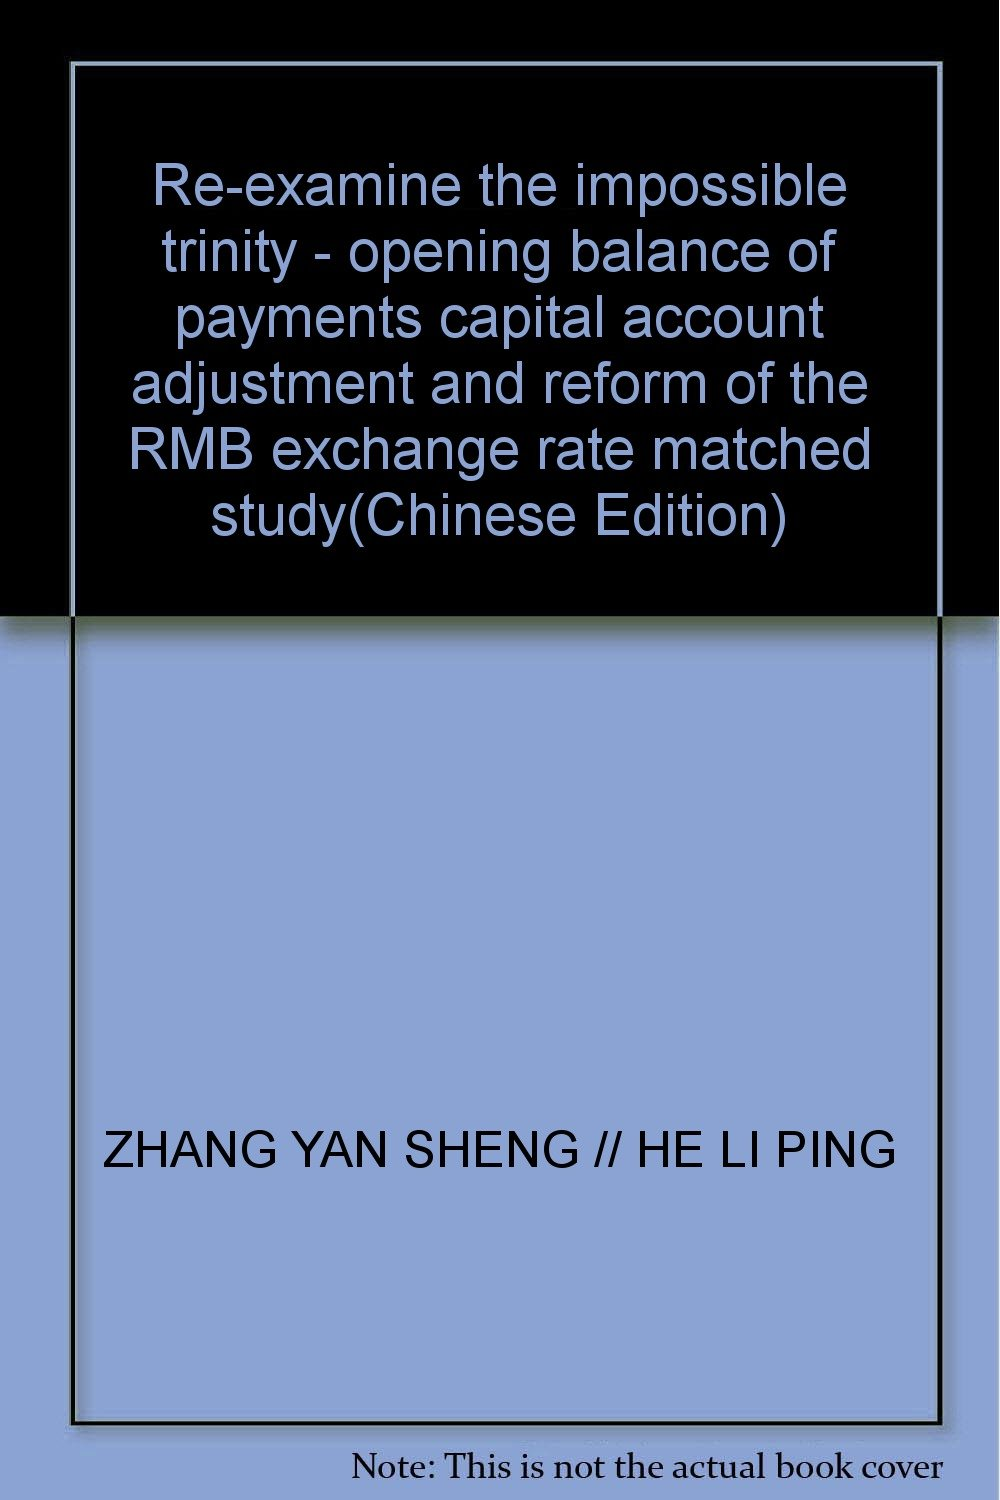 Re-examine the impossible trinity - opening balance of payments capital account adjustment and reform of the RMB exchange rate matched study(Chinese Edition) pdf